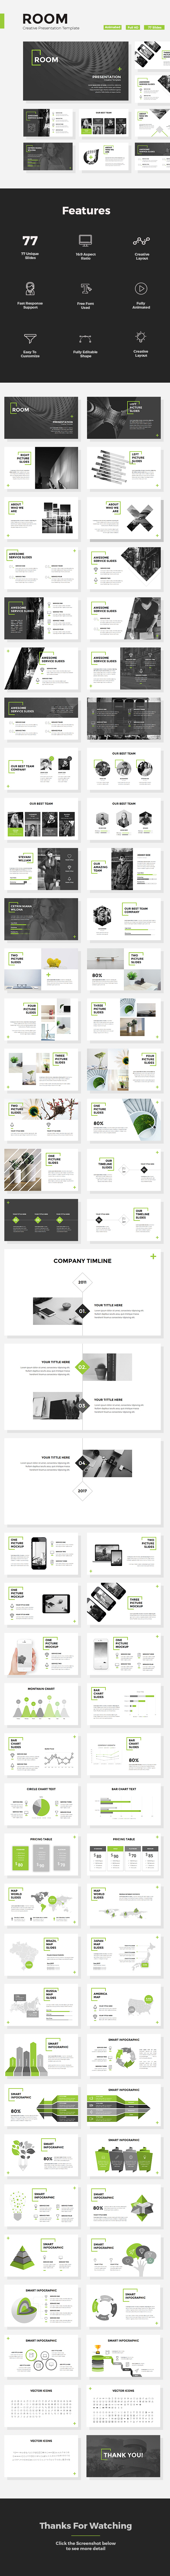 Room - Creative Powerpoint Template - Creative PowerPoint Templates